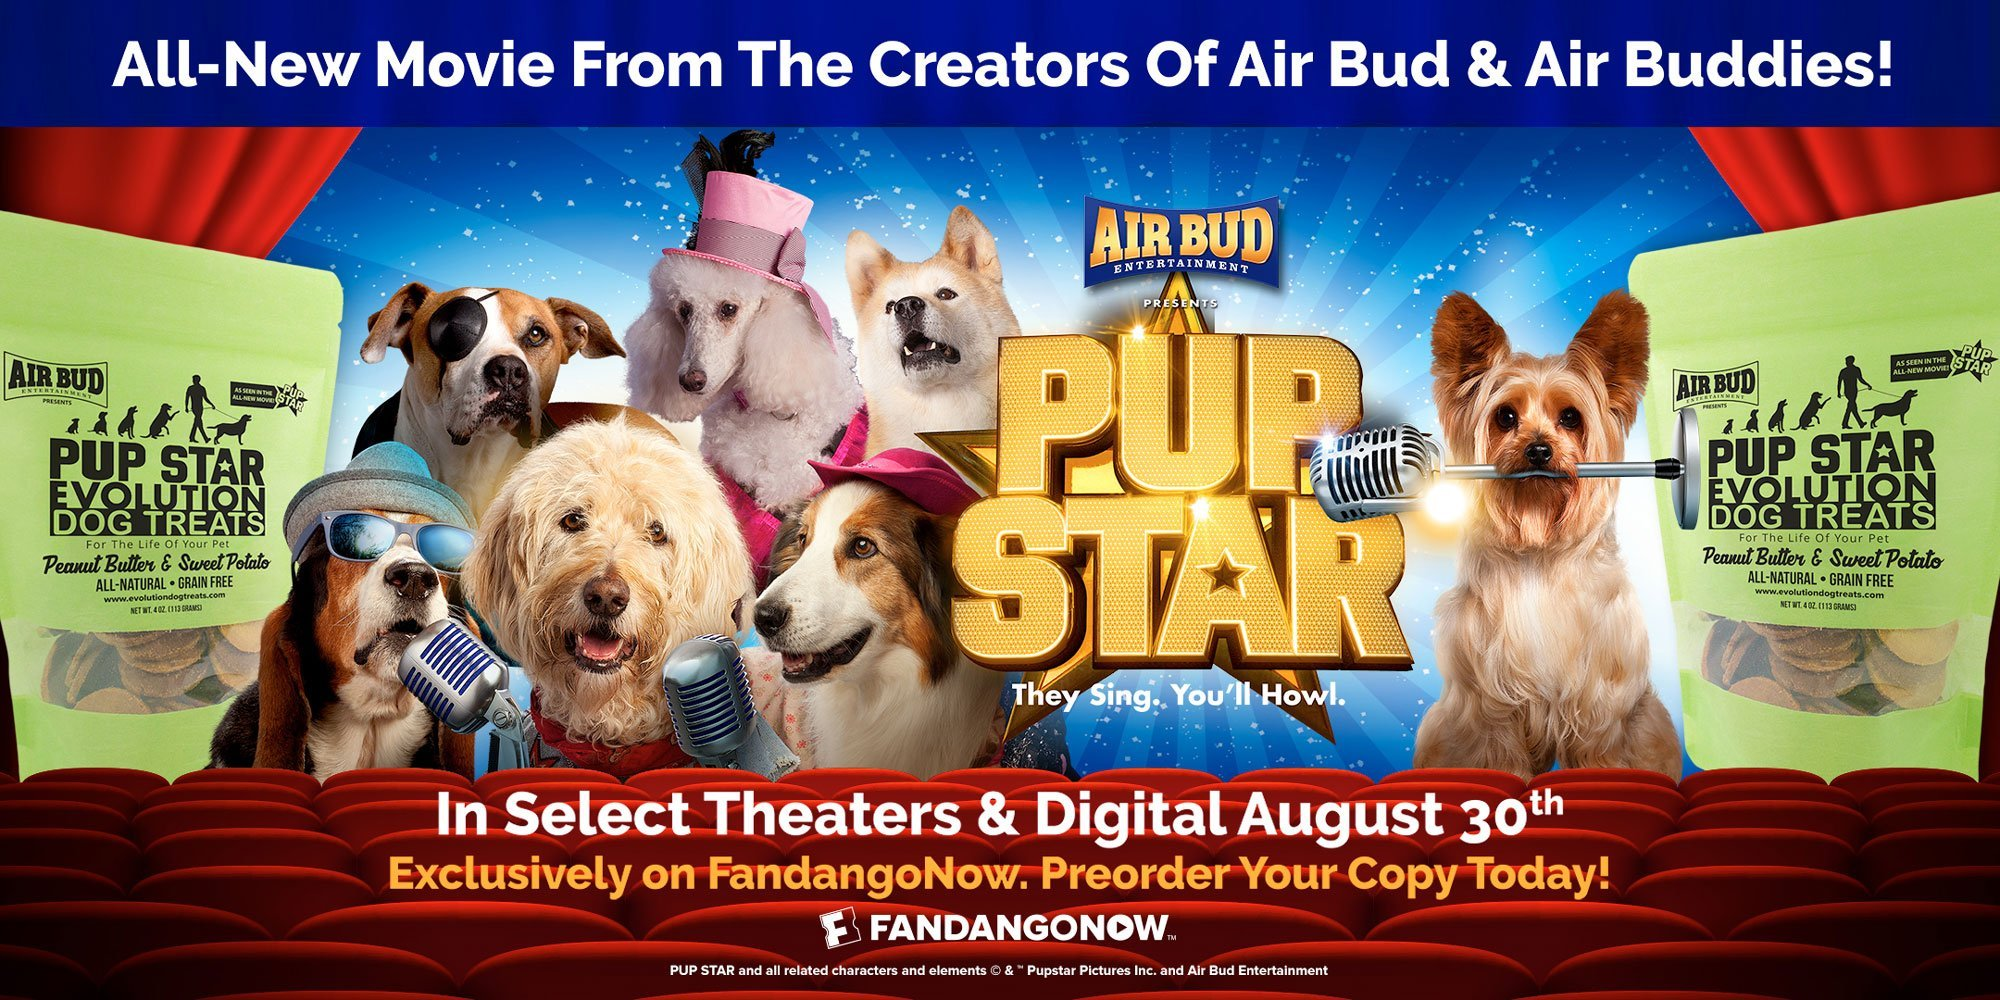 Pup Star Evolution Dog Treats Movie Promotion